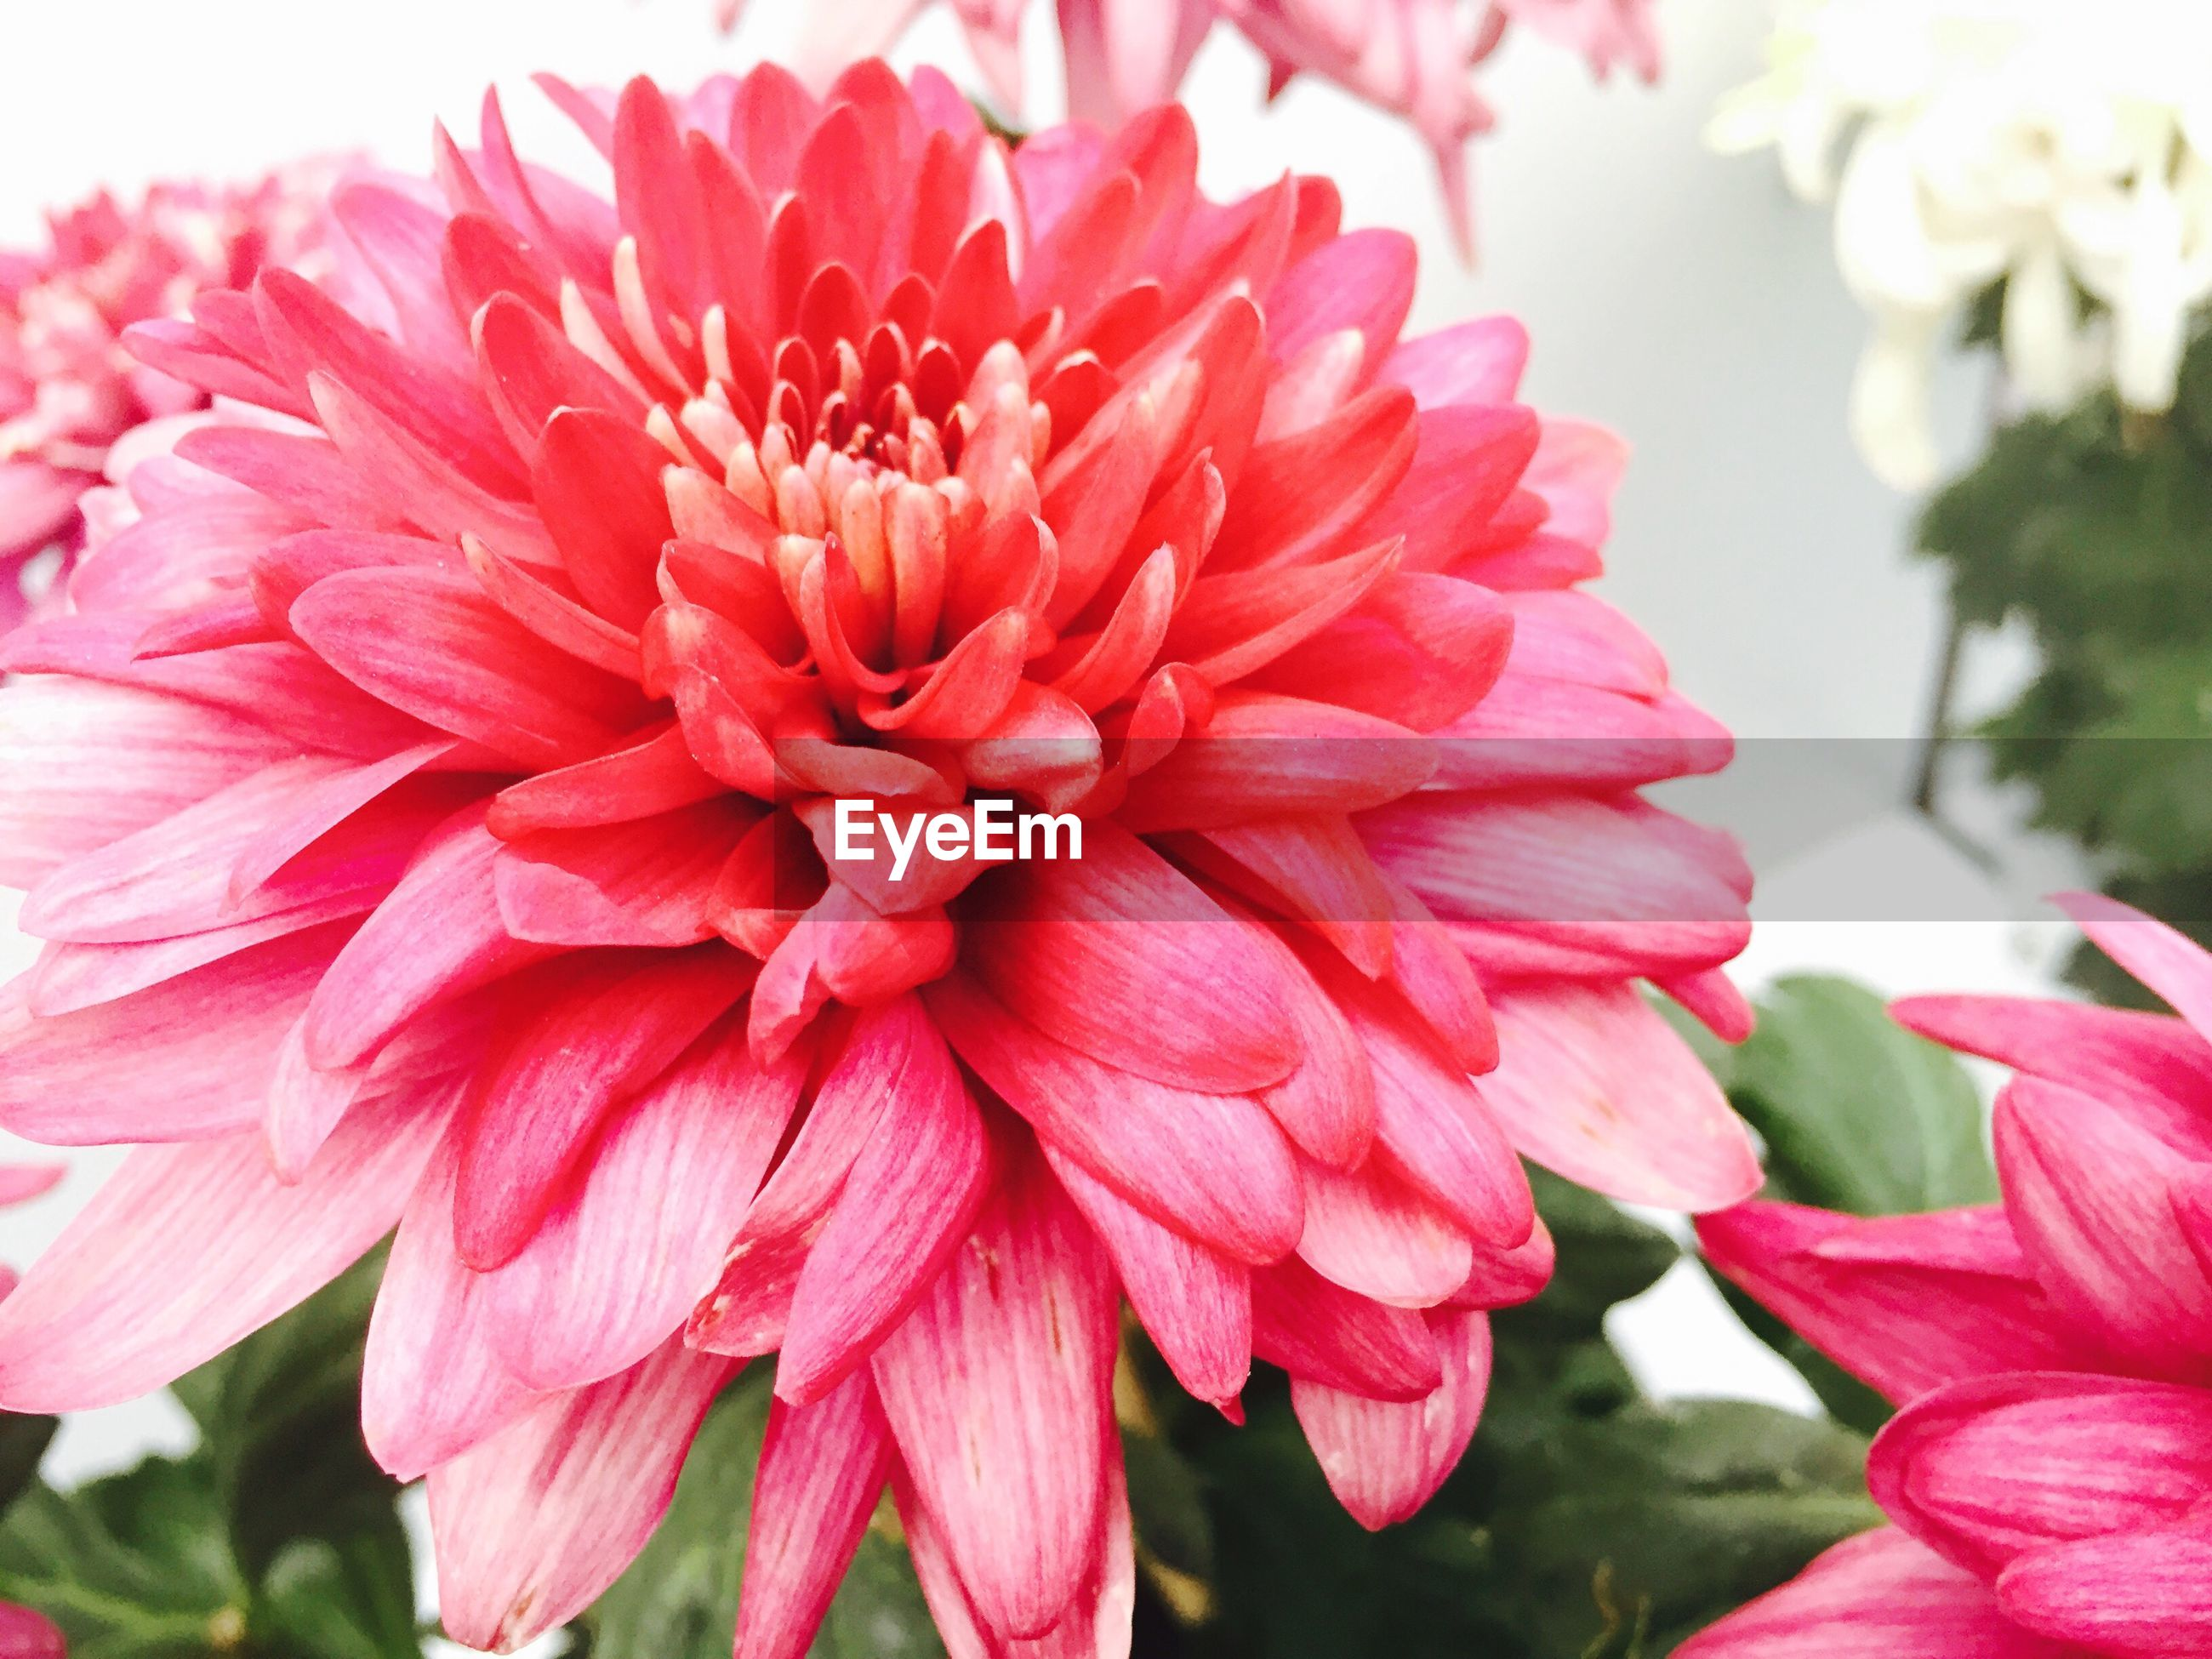 flower, petal, freshness, flower head, fragility, beauty in nature, close-up, growth, blooming, focus on foreground, pink color, red, nature, plant, pollen, in bloom, park - man made space, single flower, day, blossom